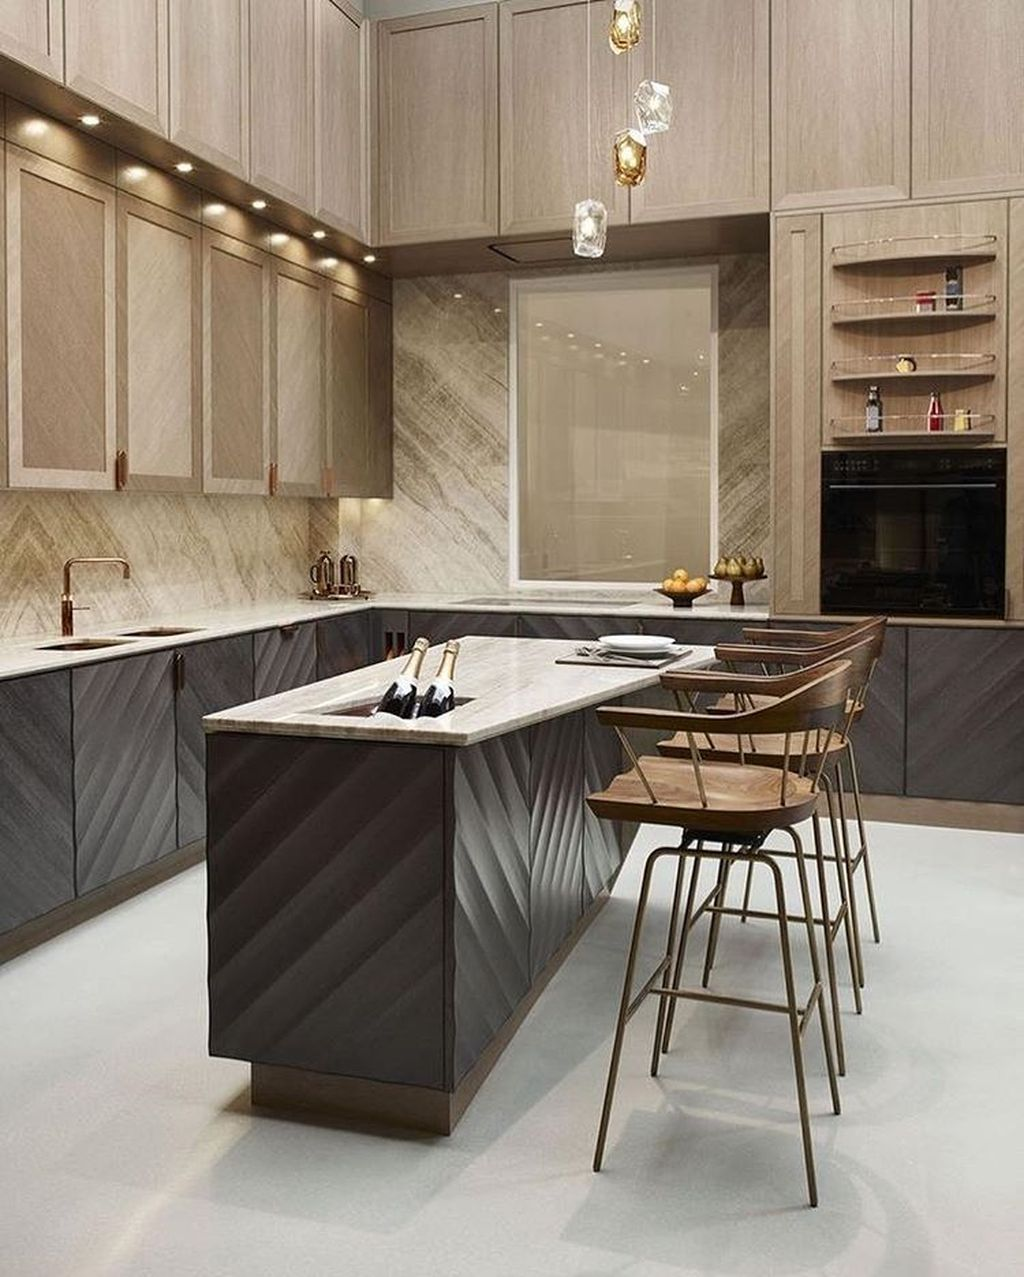 Lovely Luxury Kitchen Design Ideas You Never Seen Before 22